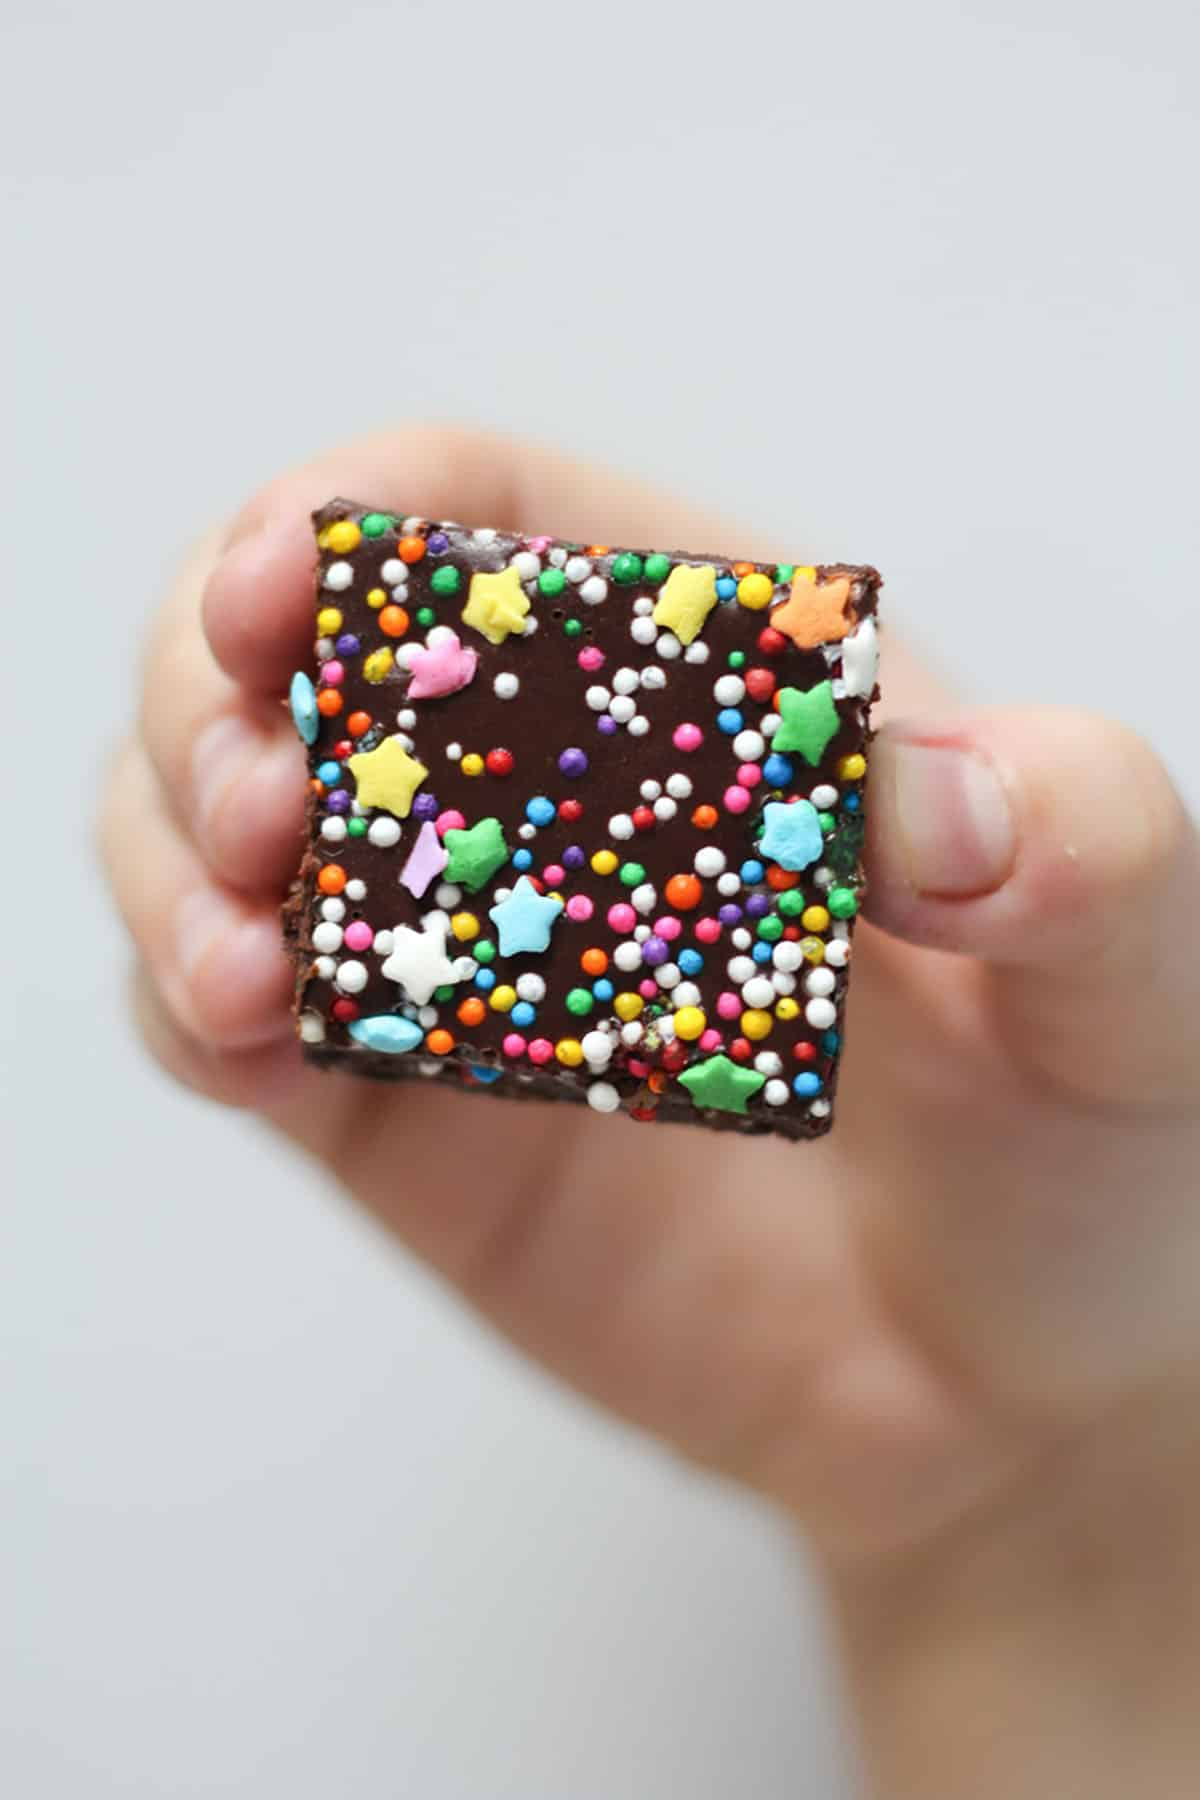 Hand holding up a no bake brownie square with rainbow sprinkles.